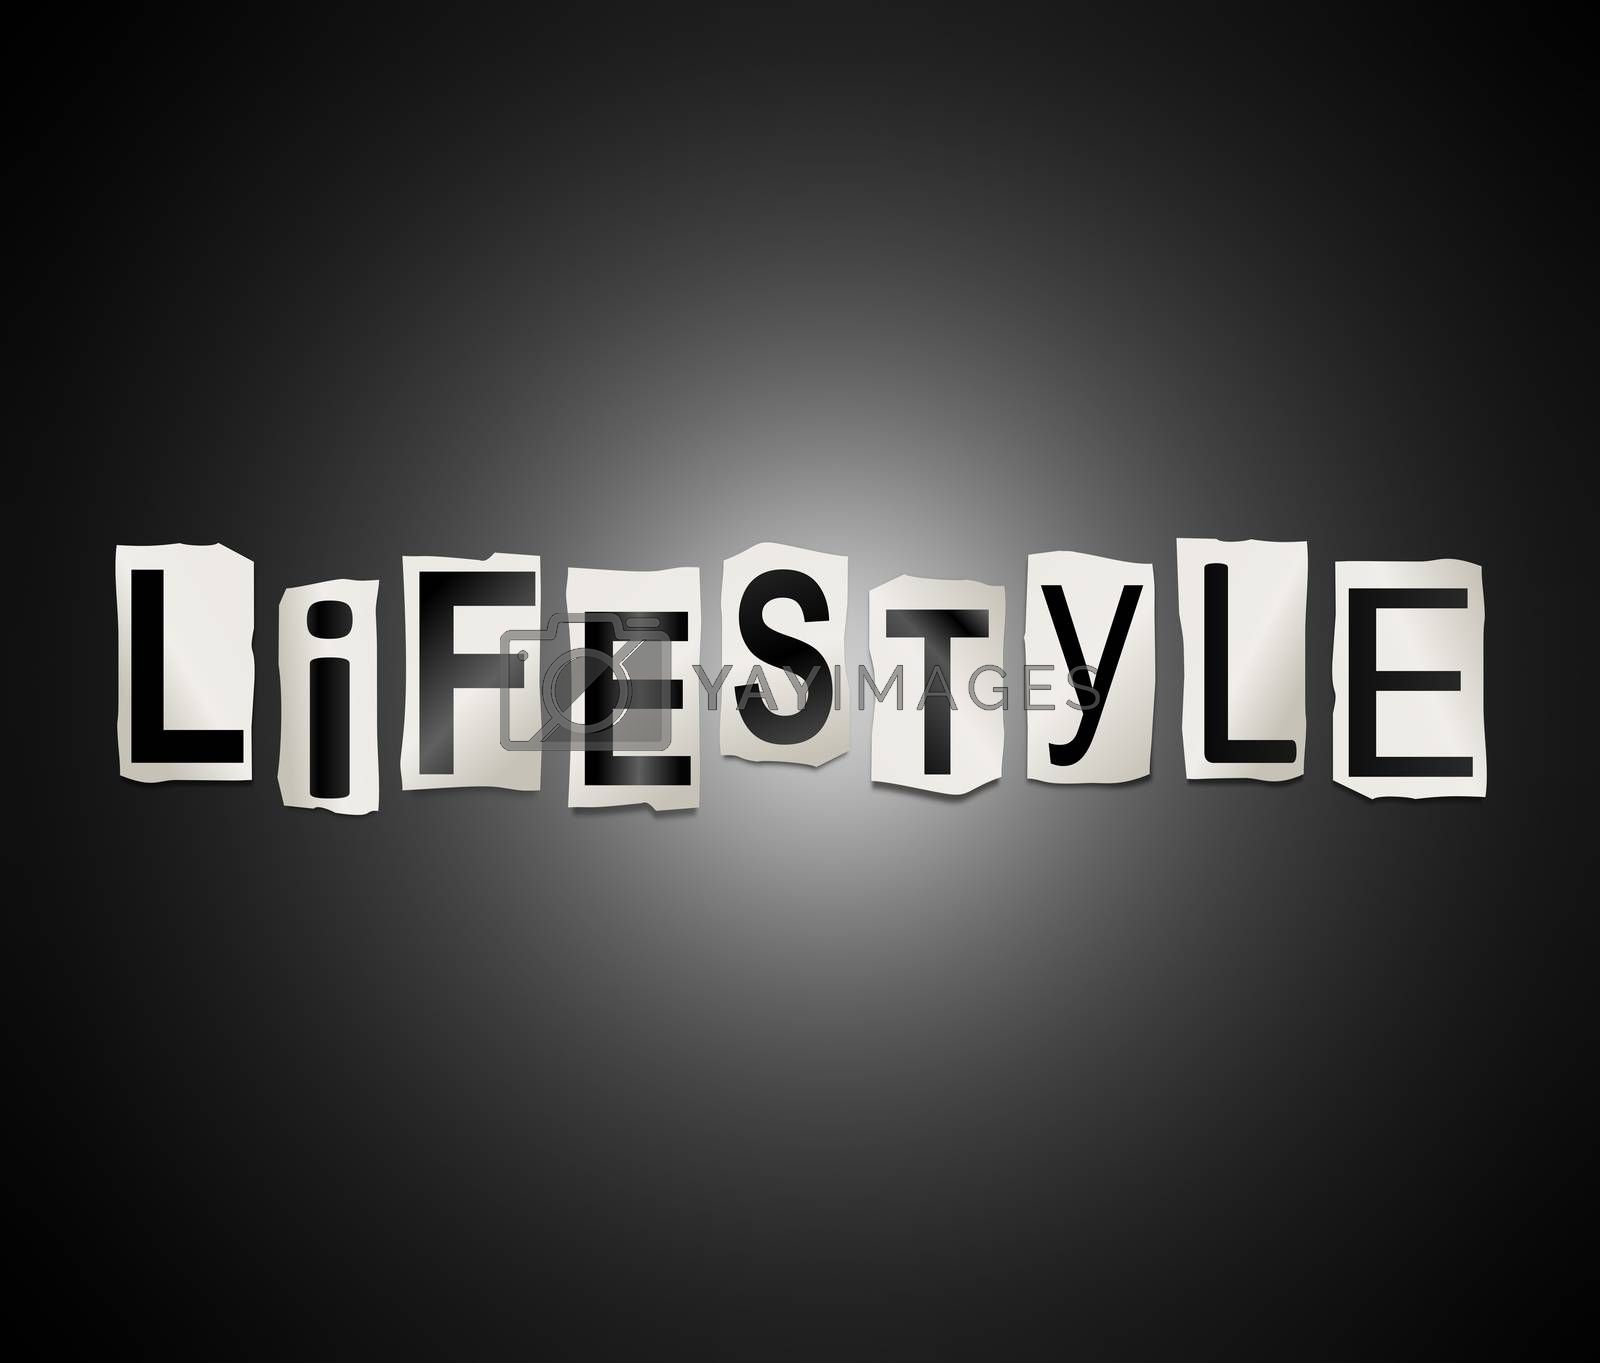 Lifestyle word concept. by 72soul